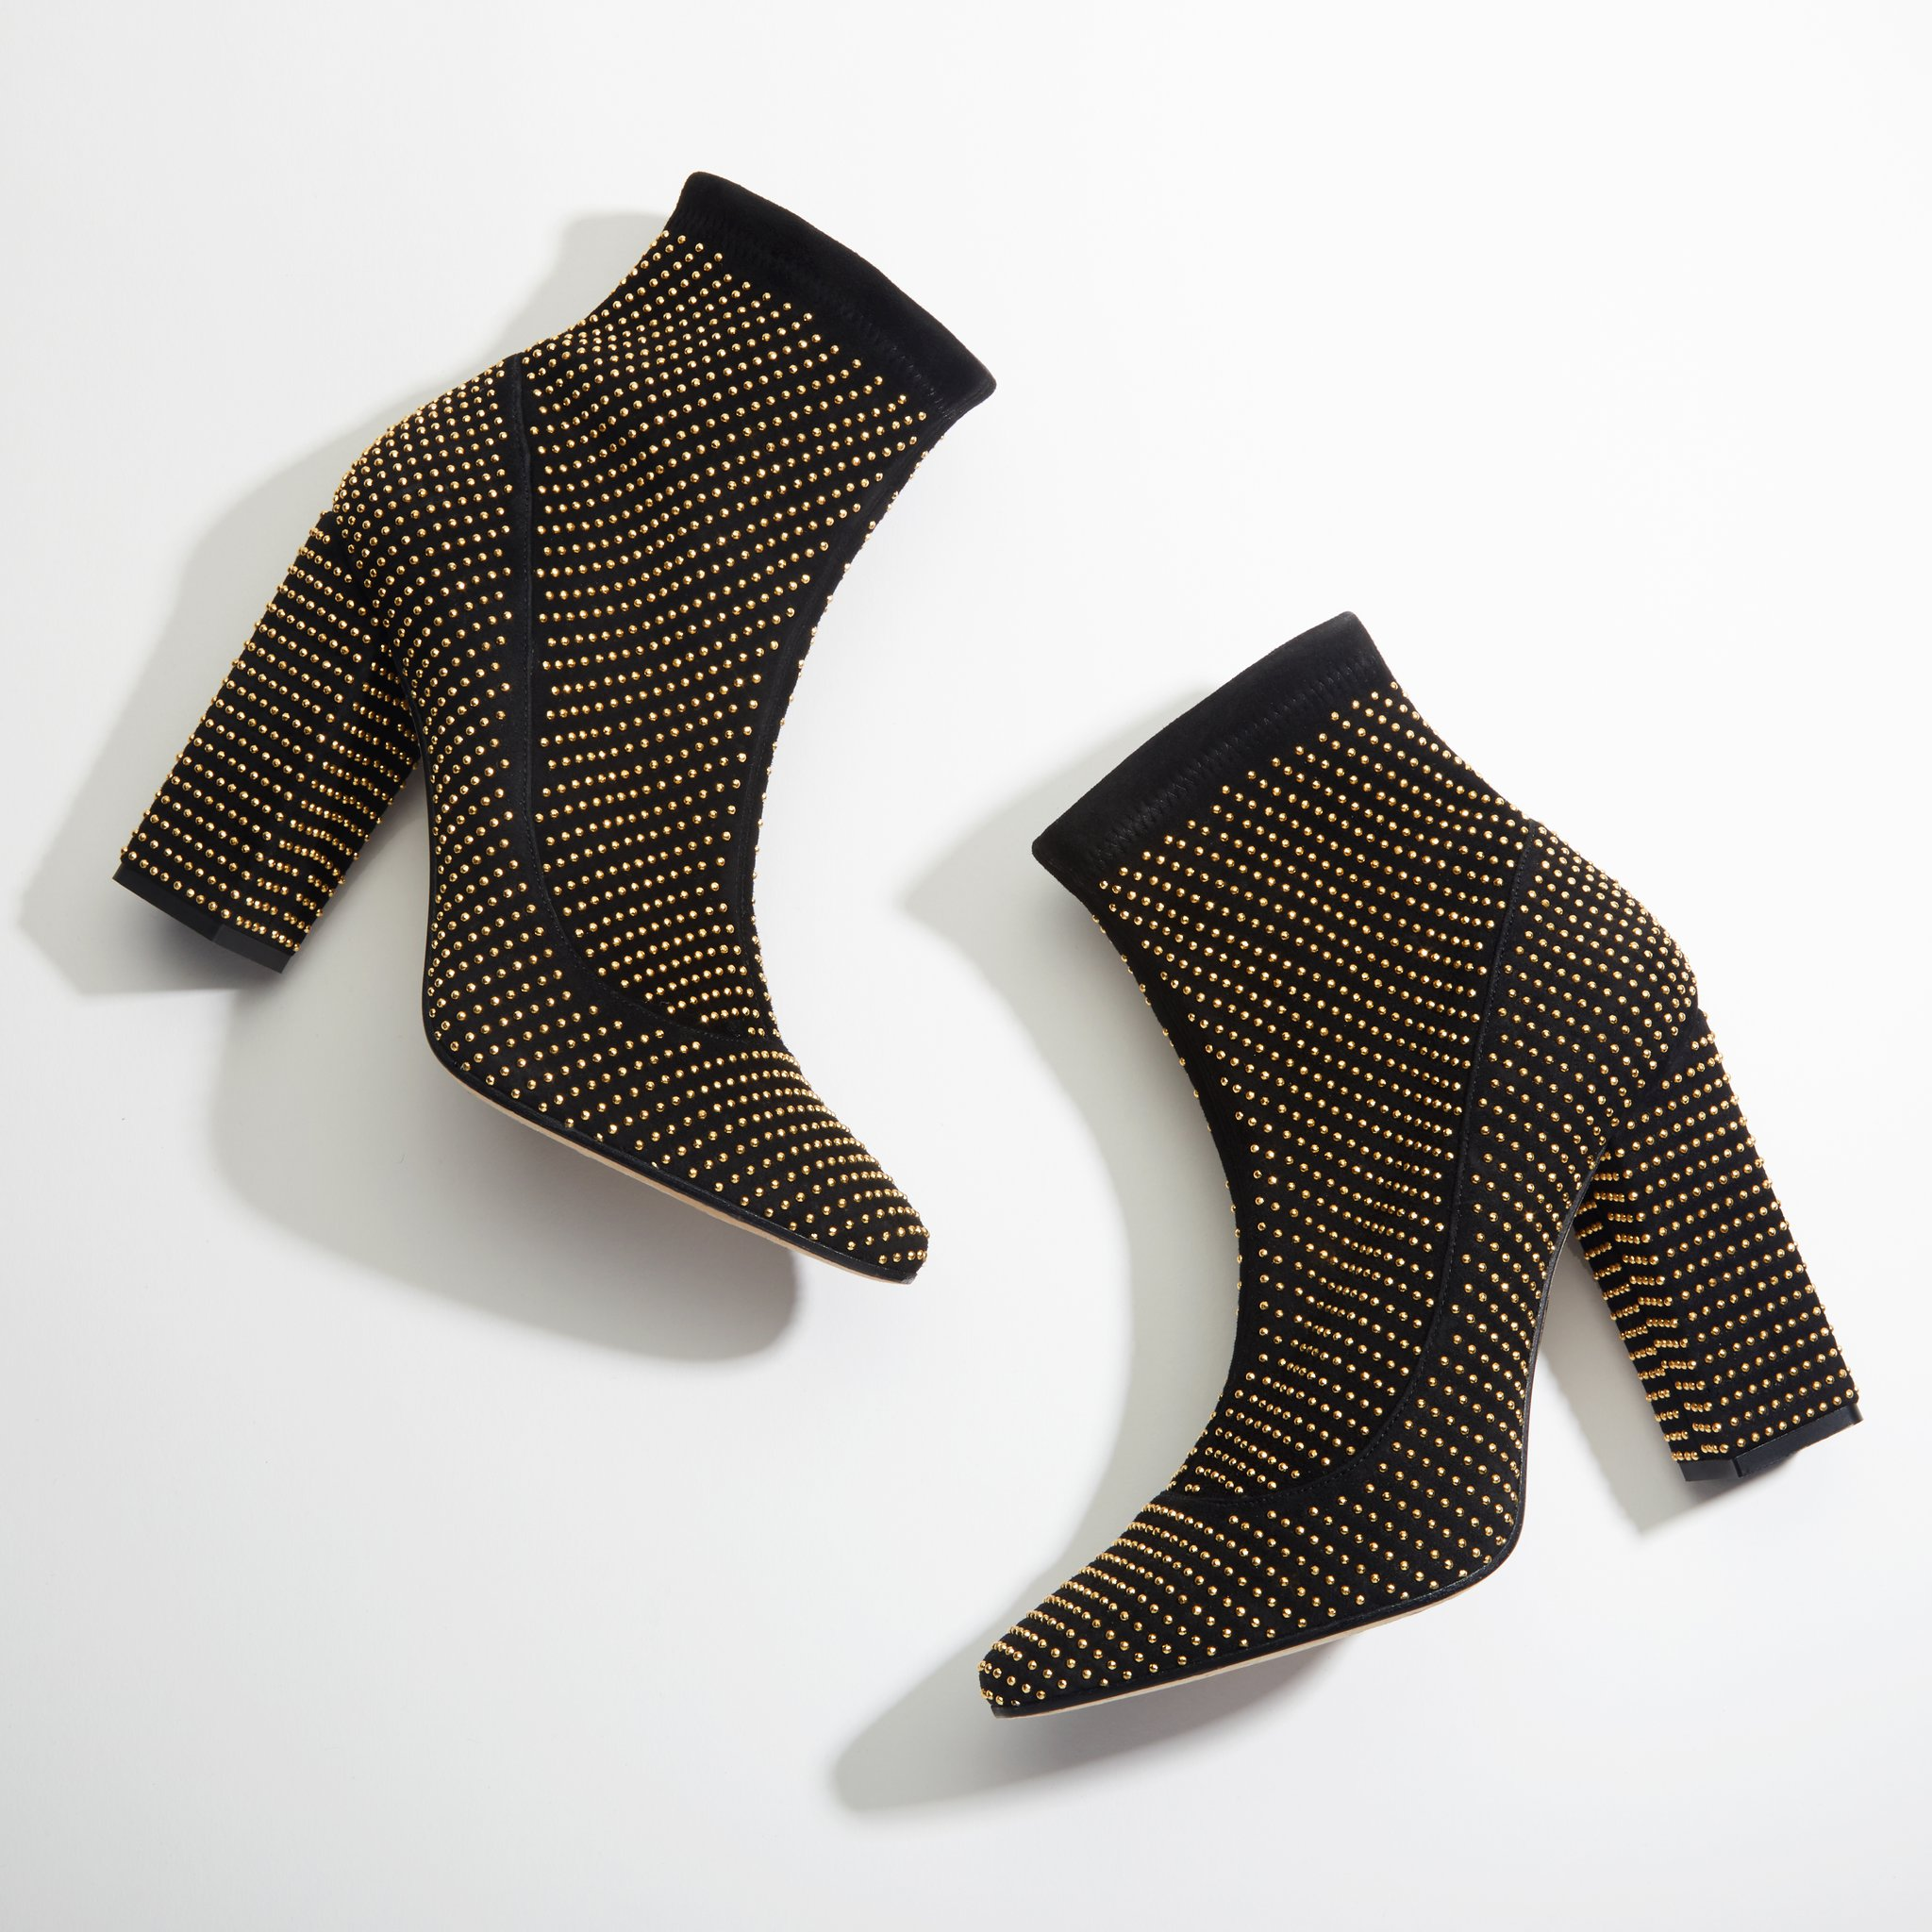 Tamara Mellon boots - attraction pull on stretch suede with micro studs